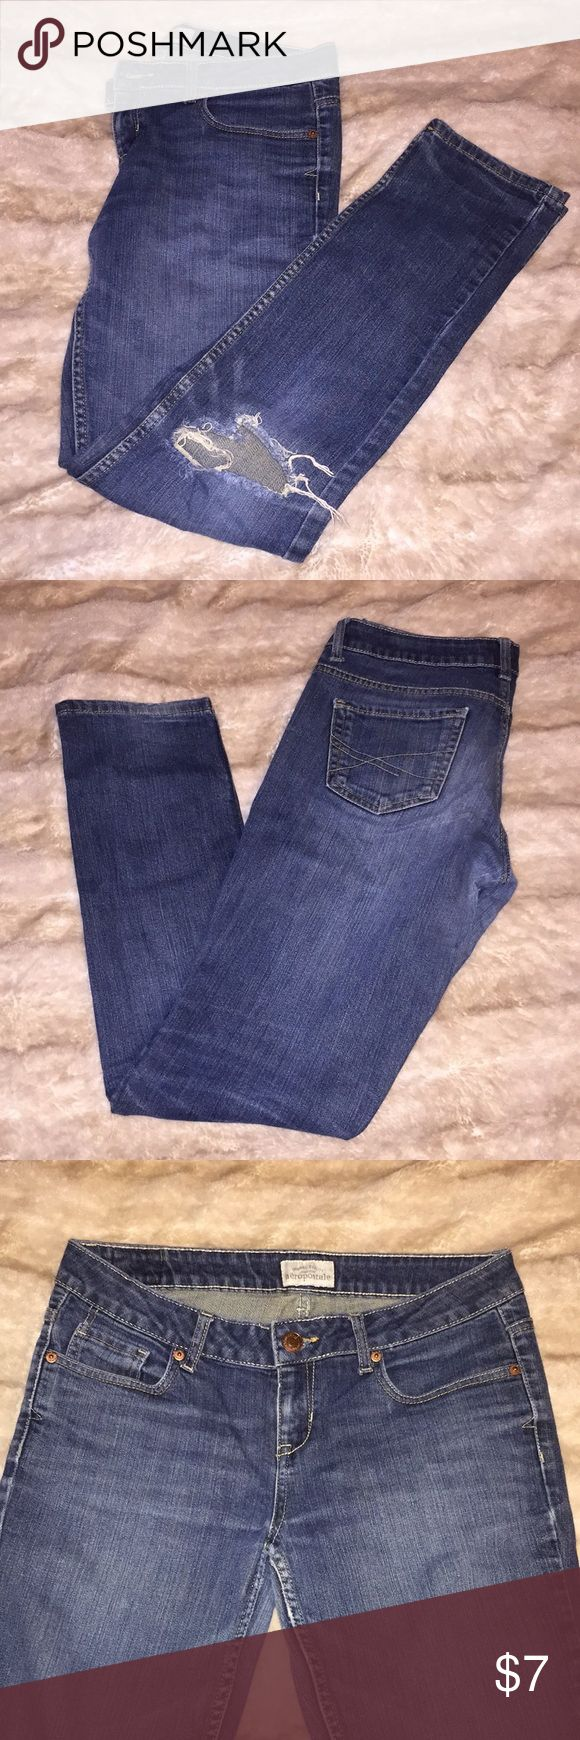 Aeropostale Bayla Skinny Jean Aeropostale Bayla Skinny Jean. 9/10 Regular (fits like women's 8). A bit worn, but has life left-price reflects! Nice regular wash, basic jean to add to your closet.   Make any reasonable offer, and I'll be happy to consider it!☺️ Aeropostale Jeans Skinny